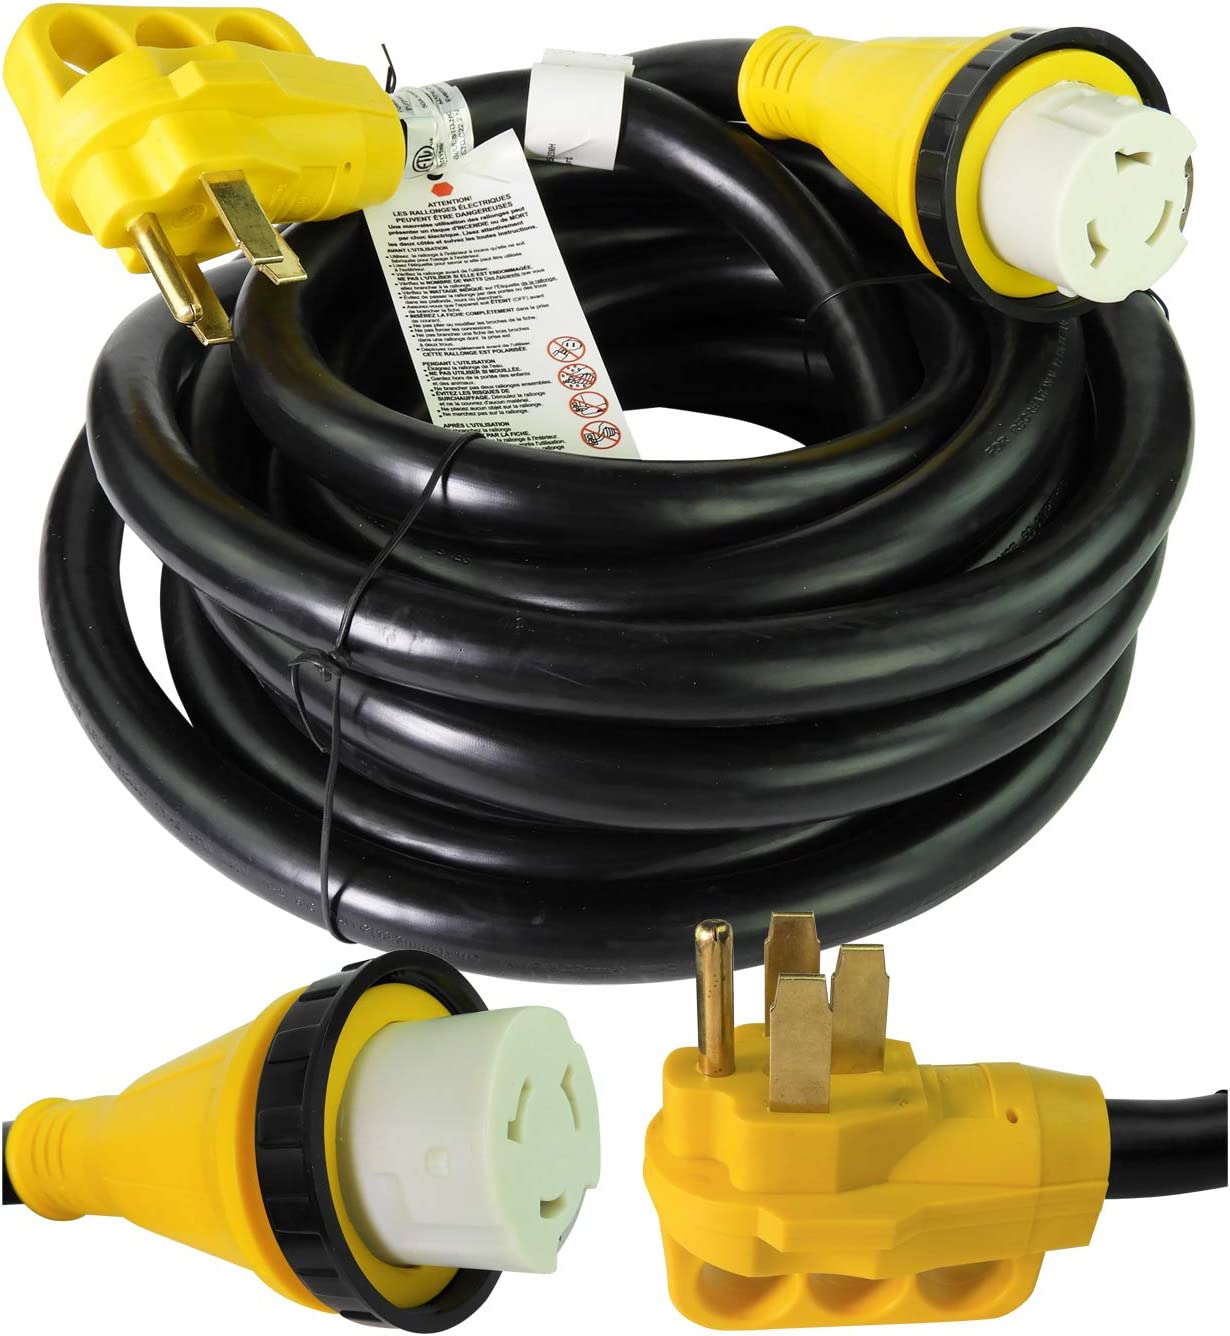 Leisure Cords 25' Power/Extension Cord with 50 AMP